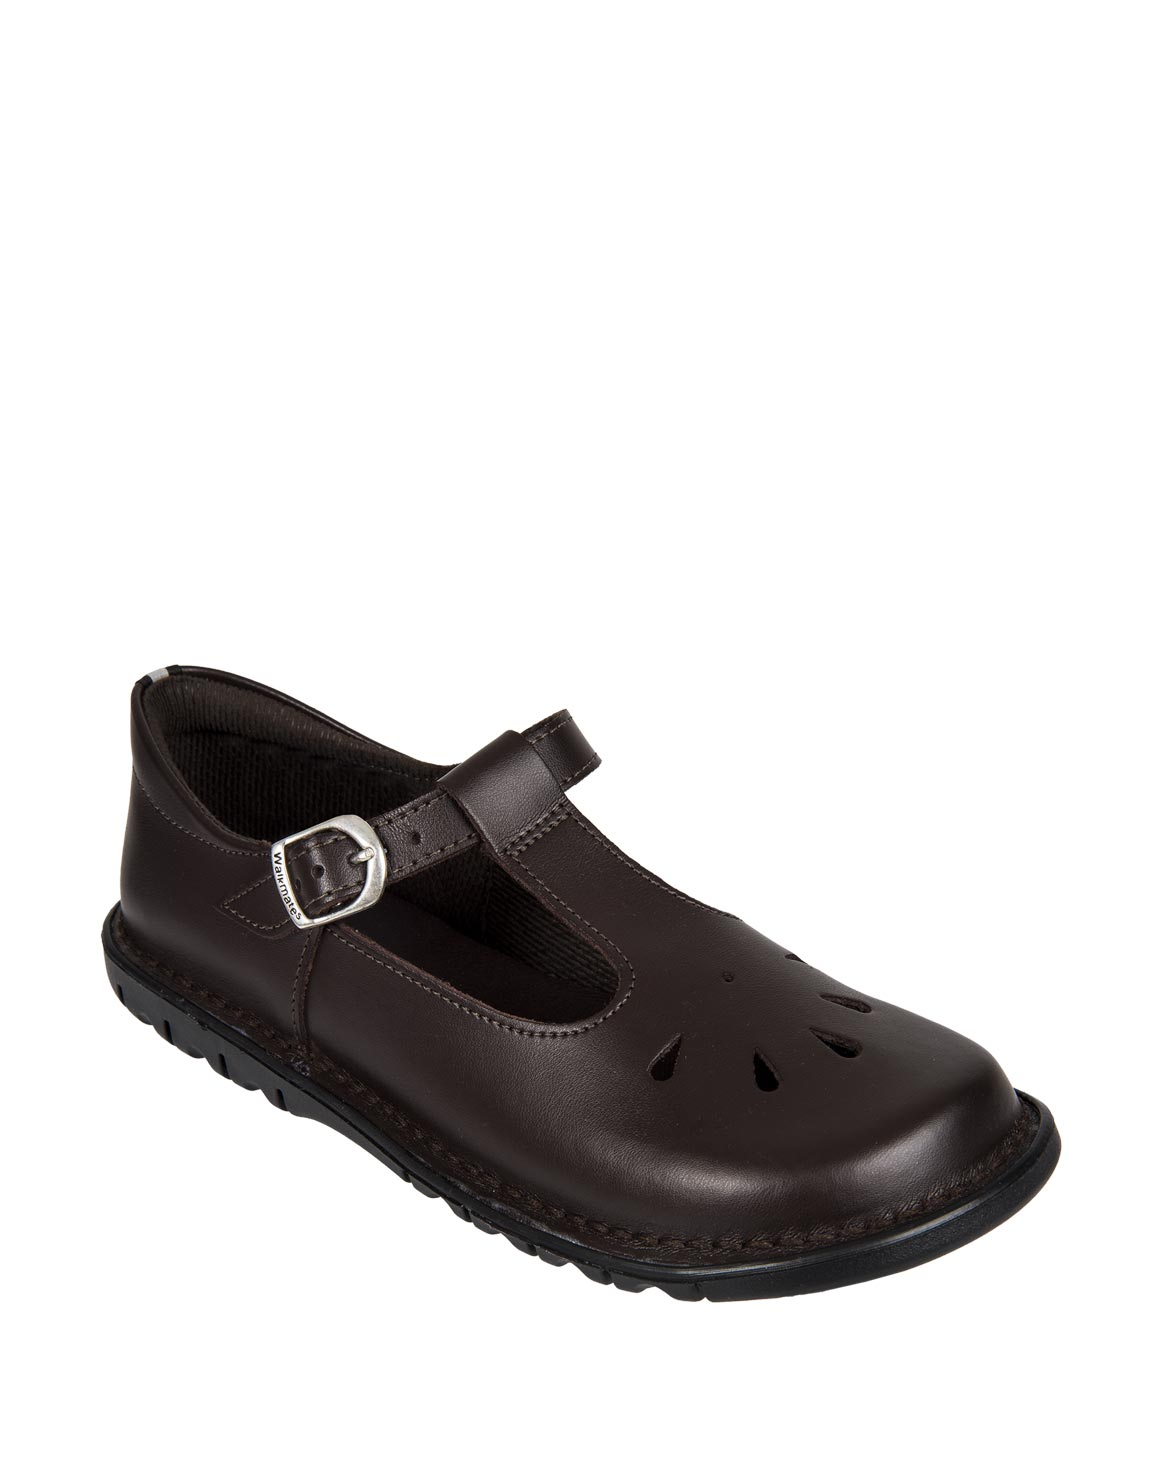 Leather T-Bar School Shoes (Size 2 - 8